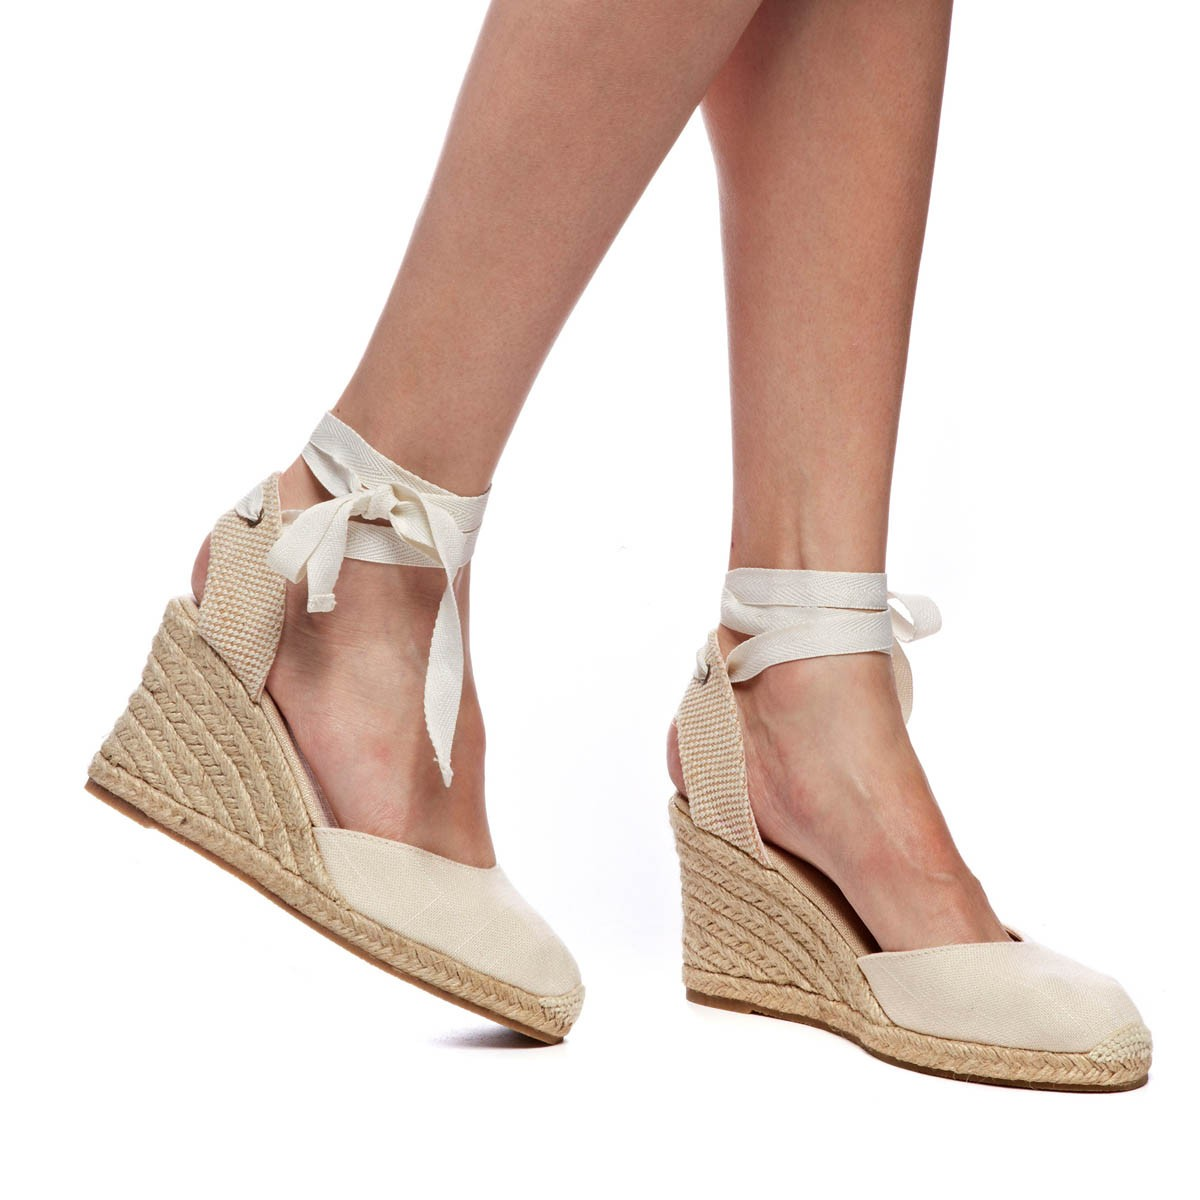 e5de1944575 Tall Wedge Sandal - Linen Blush Espadrilles for Women from Soludos -  Soludos Espadrilles